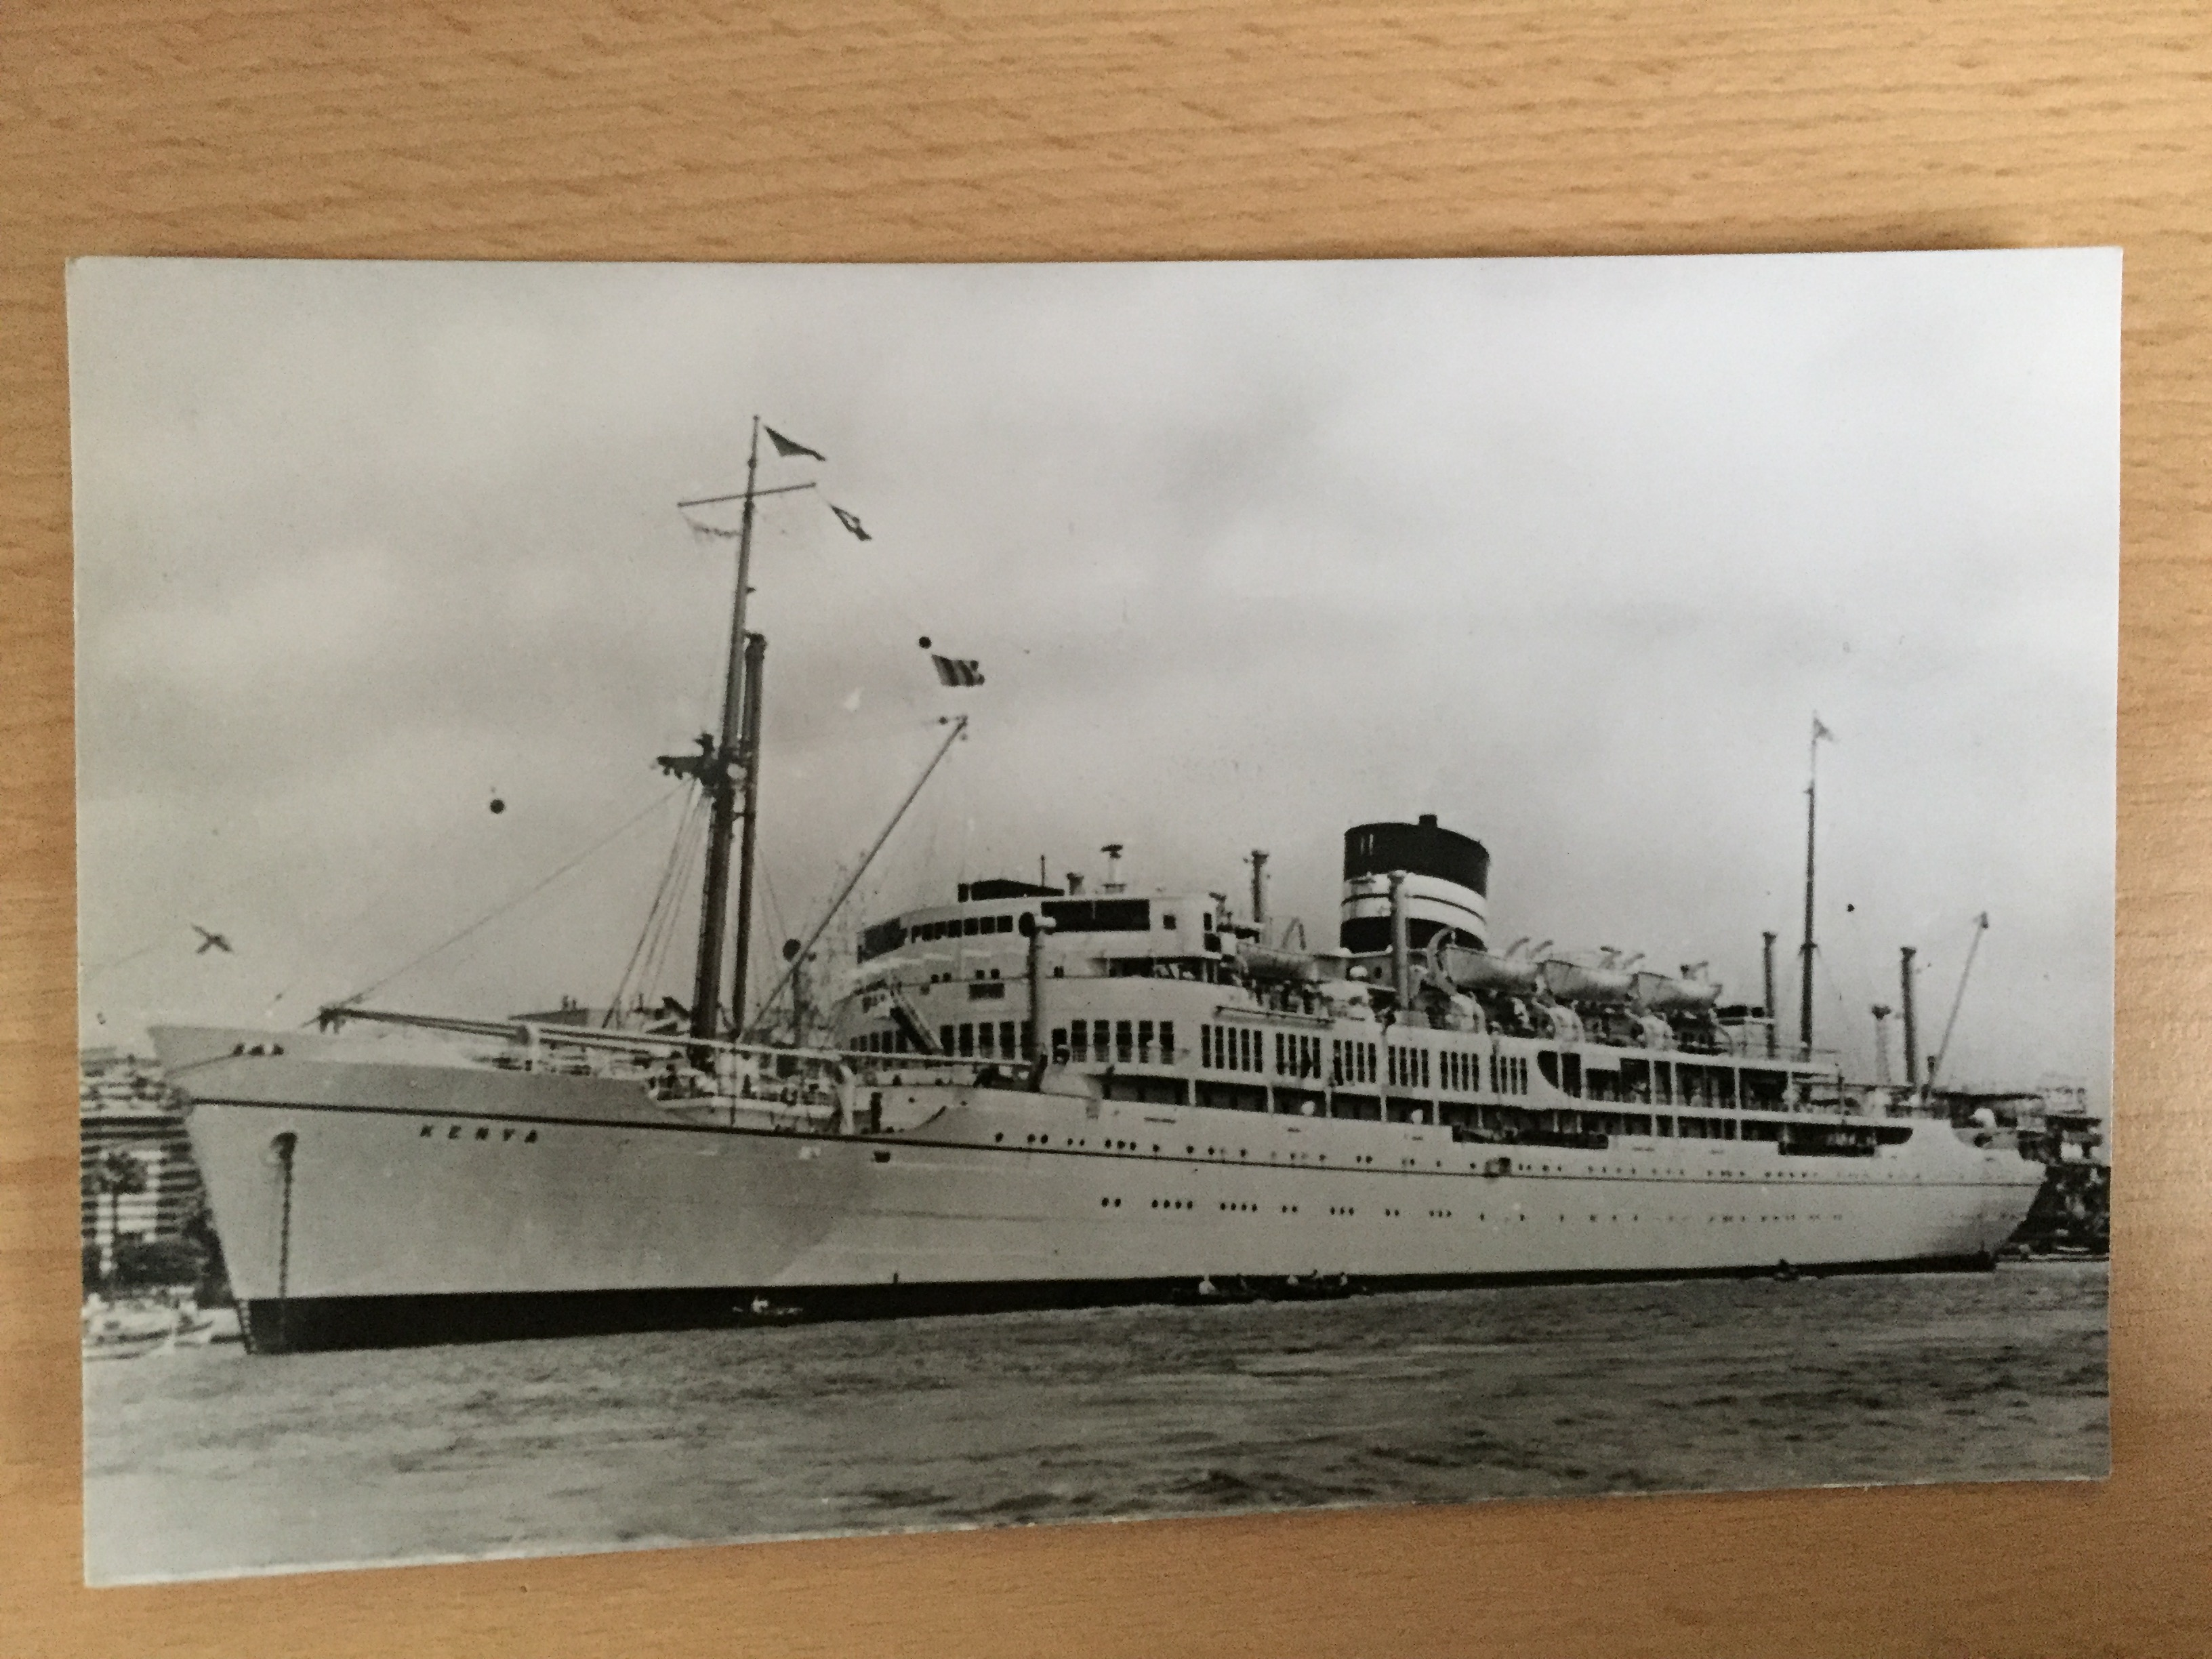 EARLY B/W POSTCARD FROM THE VESSEL KENYA FROM THE BRITISH INDIA STEAM NAVIGATION COMPANY